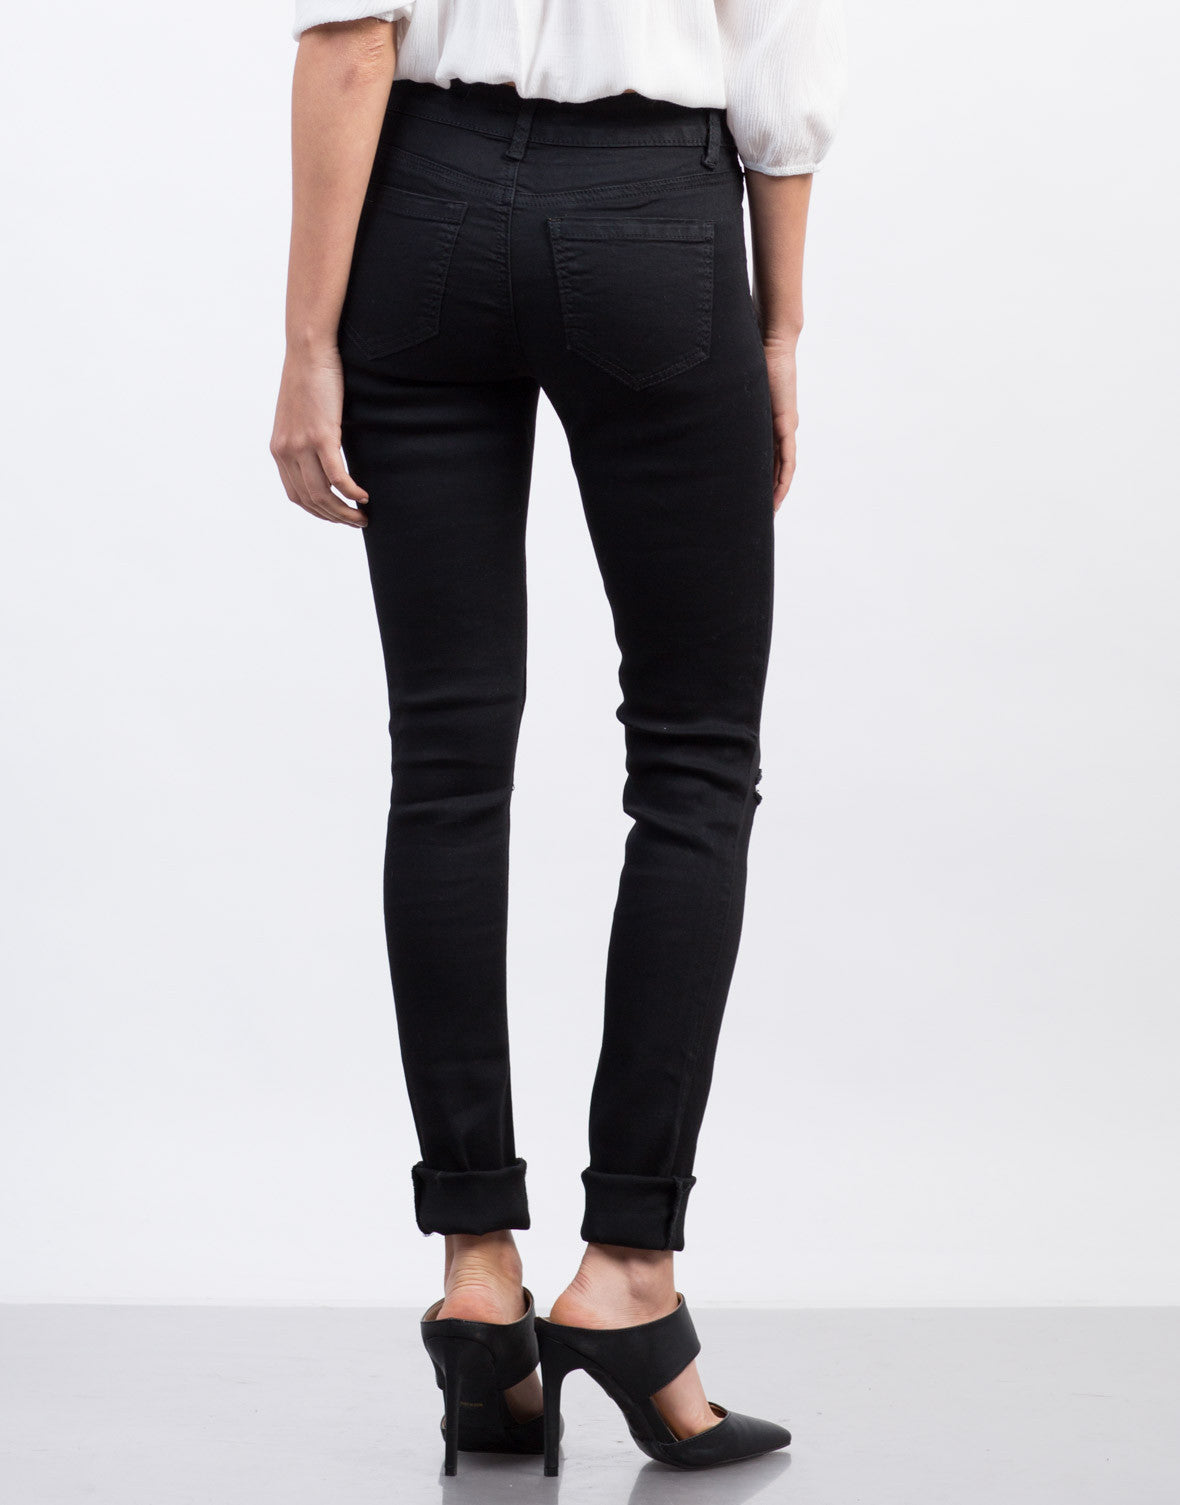 Back View of Ripped High Waisted Skinny Jeans